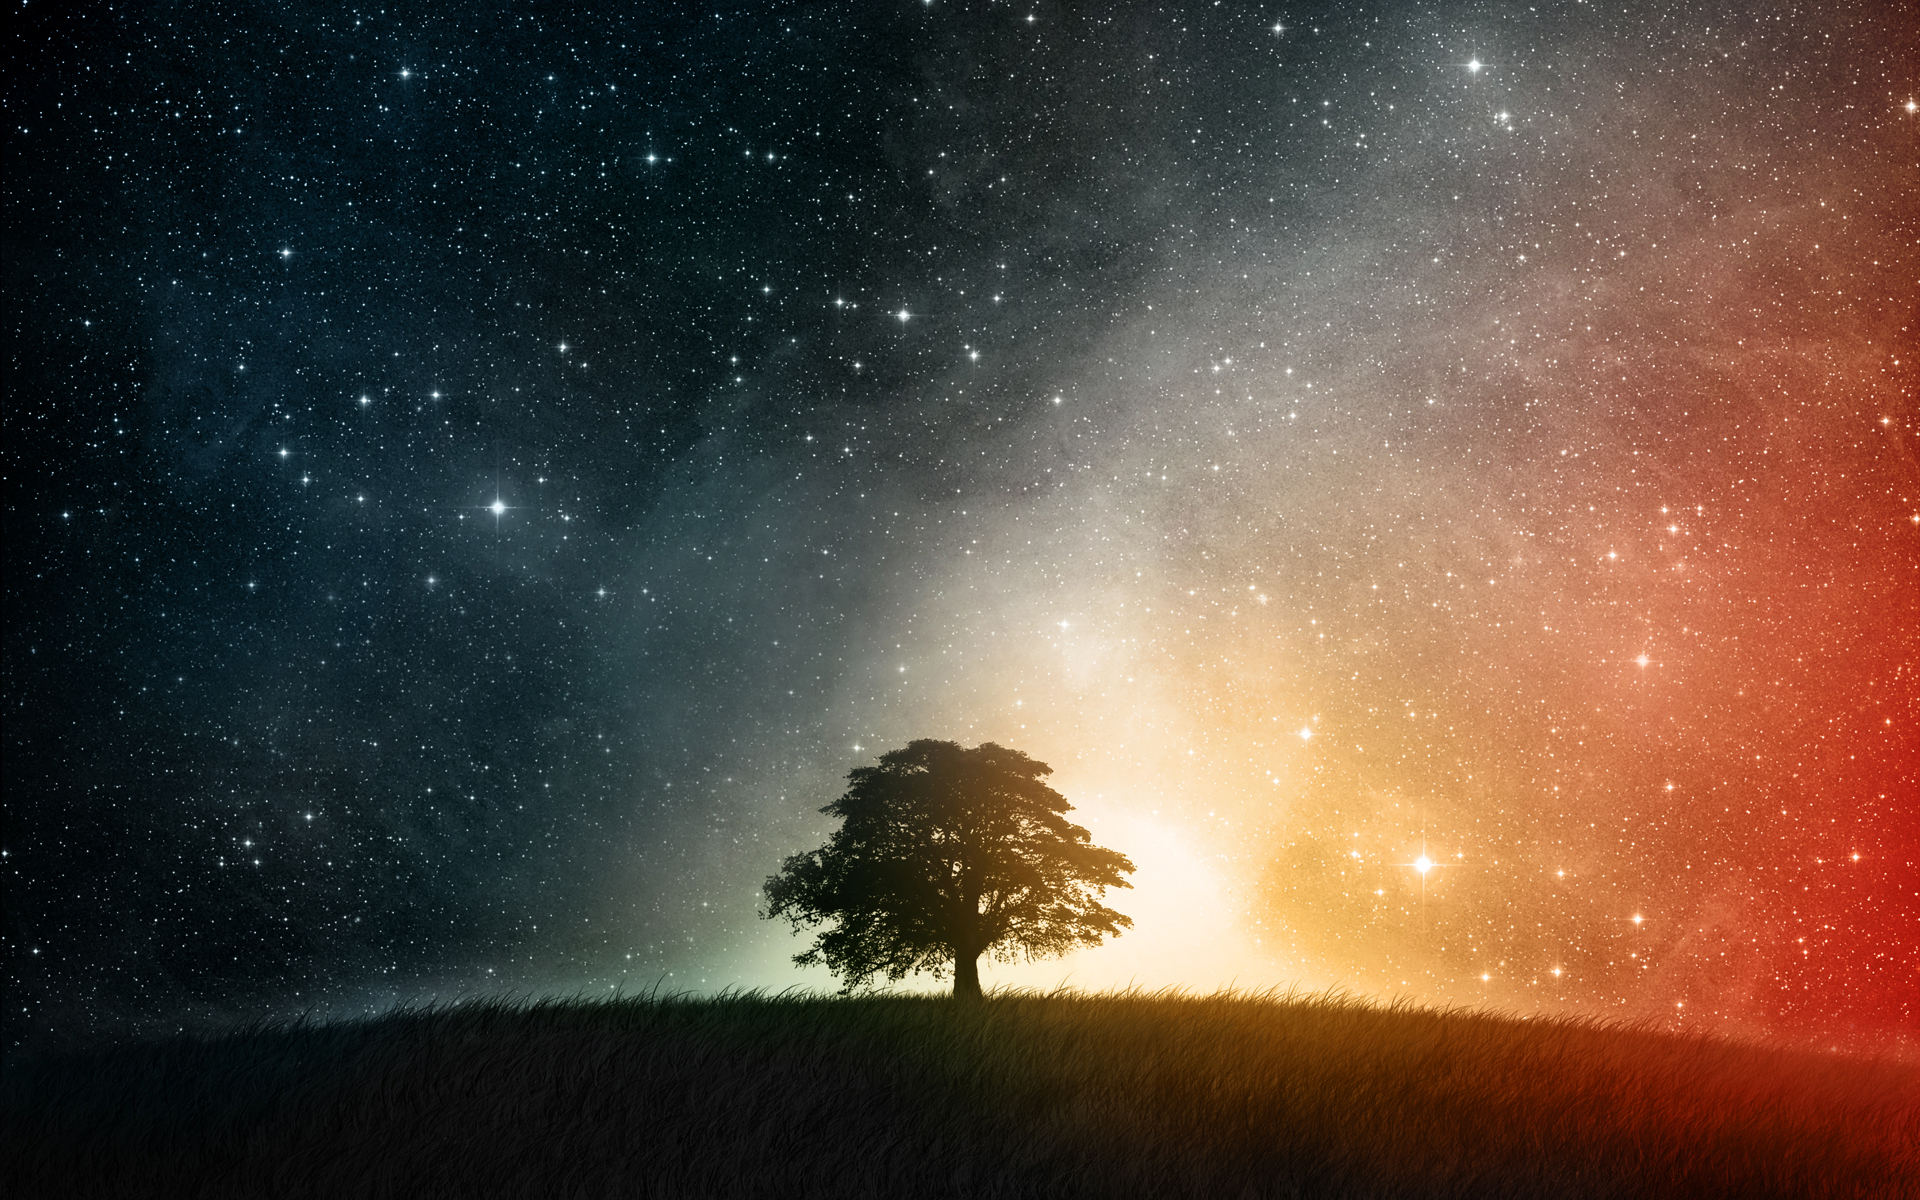 Aarde - A Dreamy World  - Cgi - Landschap - Veld - Gras - Lucht - Light - Stars - Color - Boom - Cosmos - Space Achtergrond